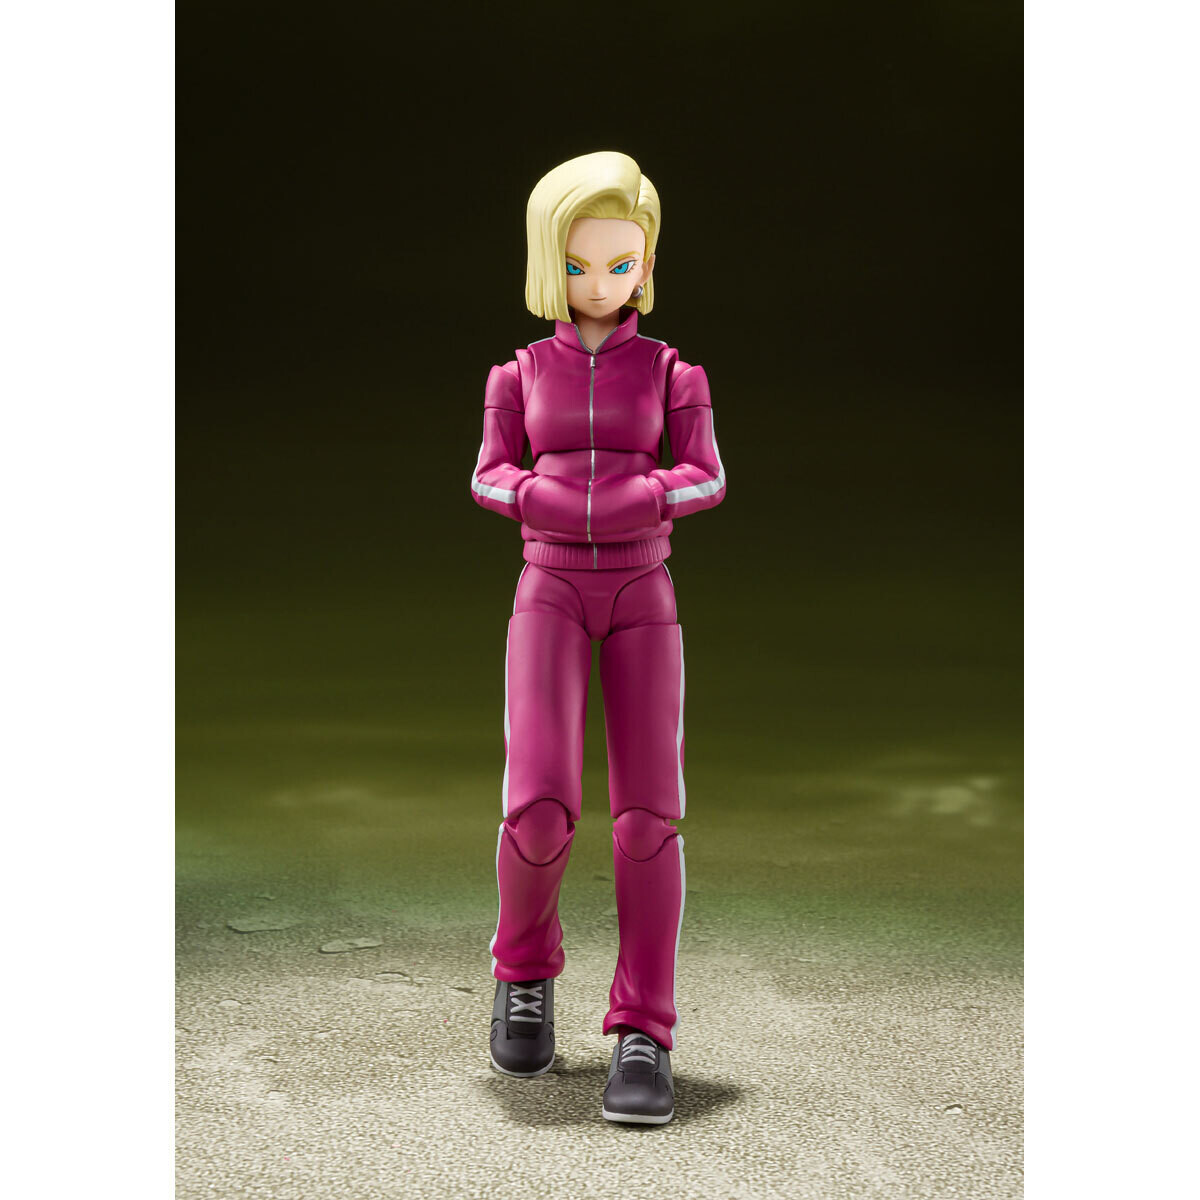 Figuarts - ANDROIDE 18